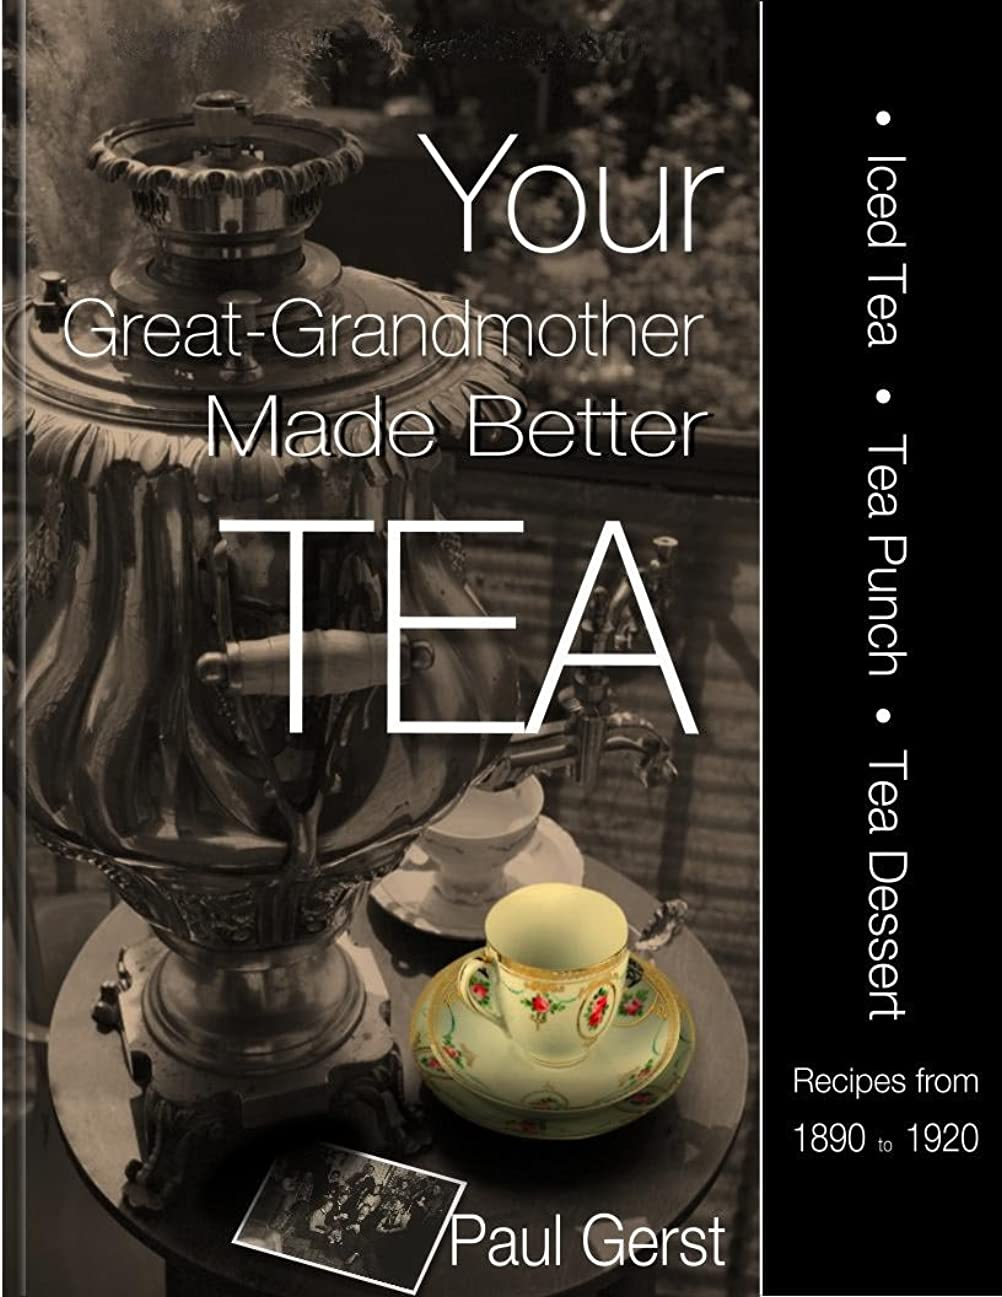 カップル指令満足できるYour Great-Grandmother Made Better Tea: Ice Tea Tea Punch Tea Dessert Recipes 1890-1920 (English Edition)